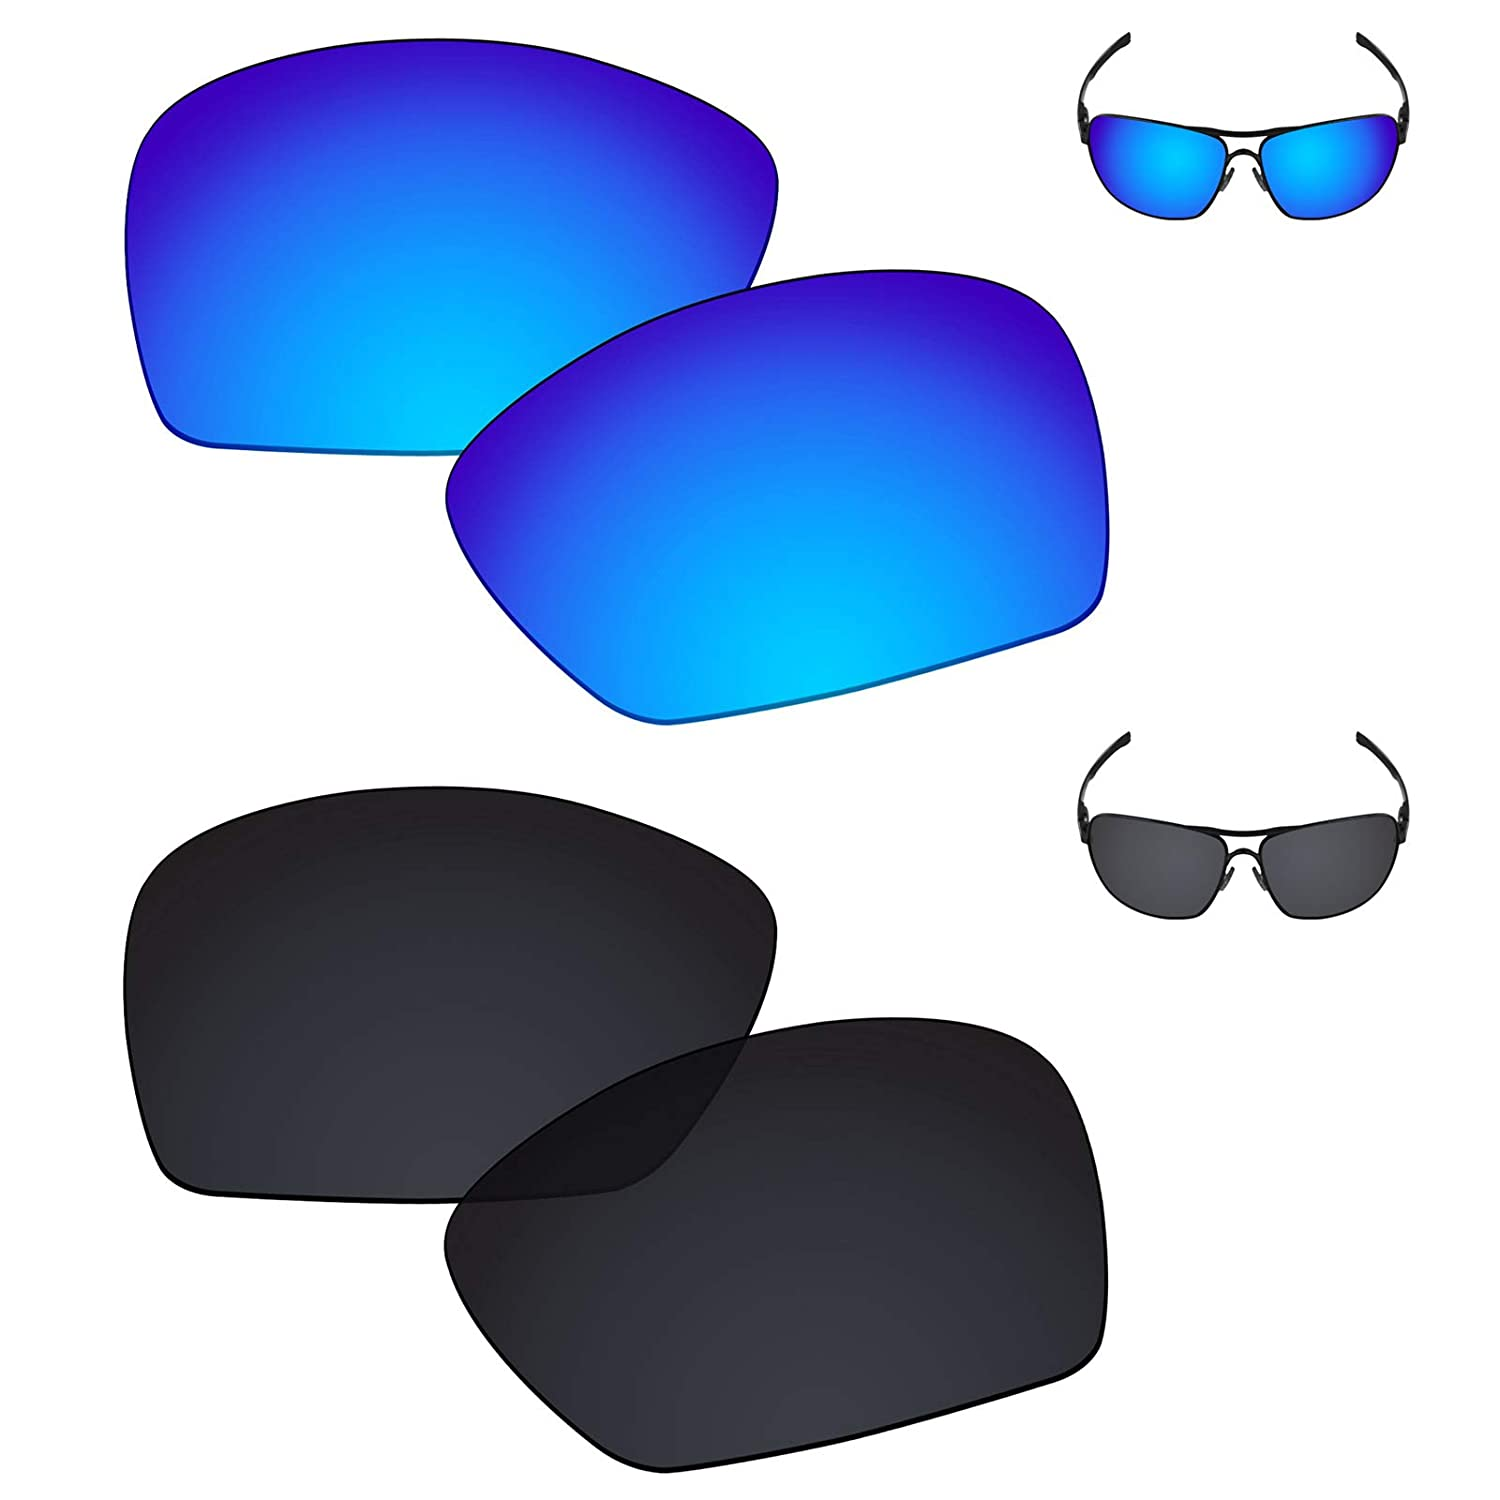 c91d36ee5b4 Amazon.com  Galvanic Replacement Lenses for Oakley Plaintiff Squared -  Amber + Black Polarized - Combo Pack  Clothing